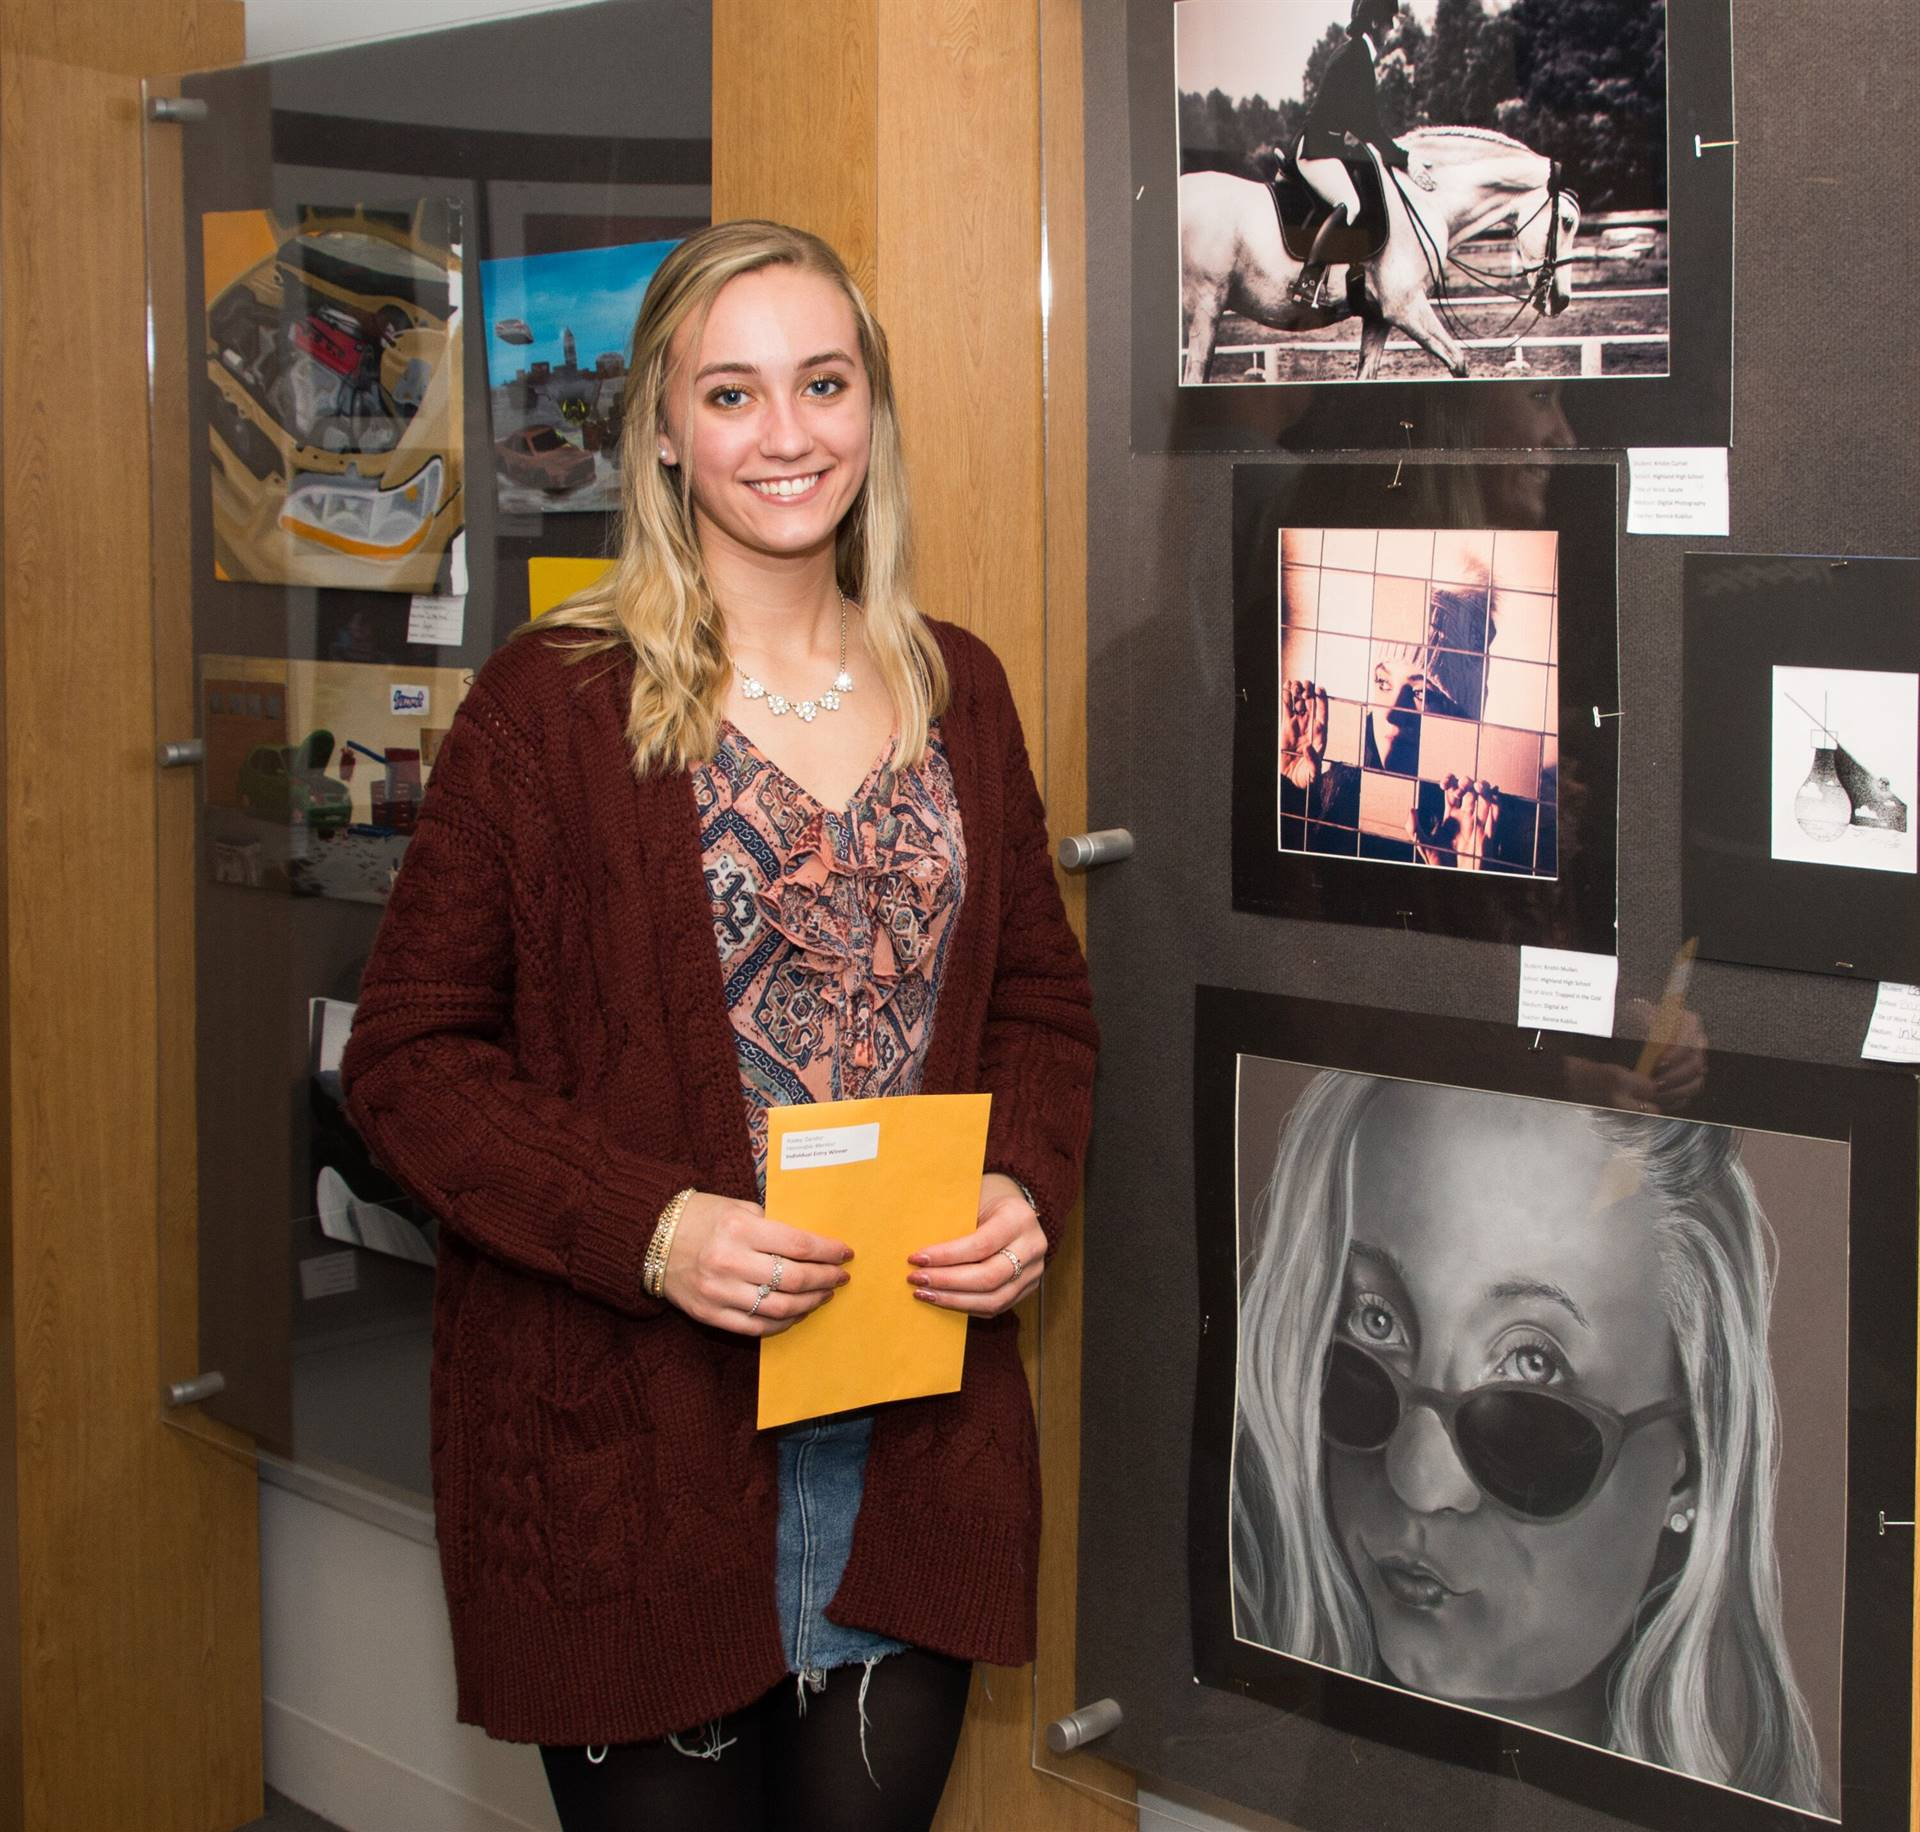 Kaeley Sandor, H.M. 2019 Individual Artwork Winner, with her artwork